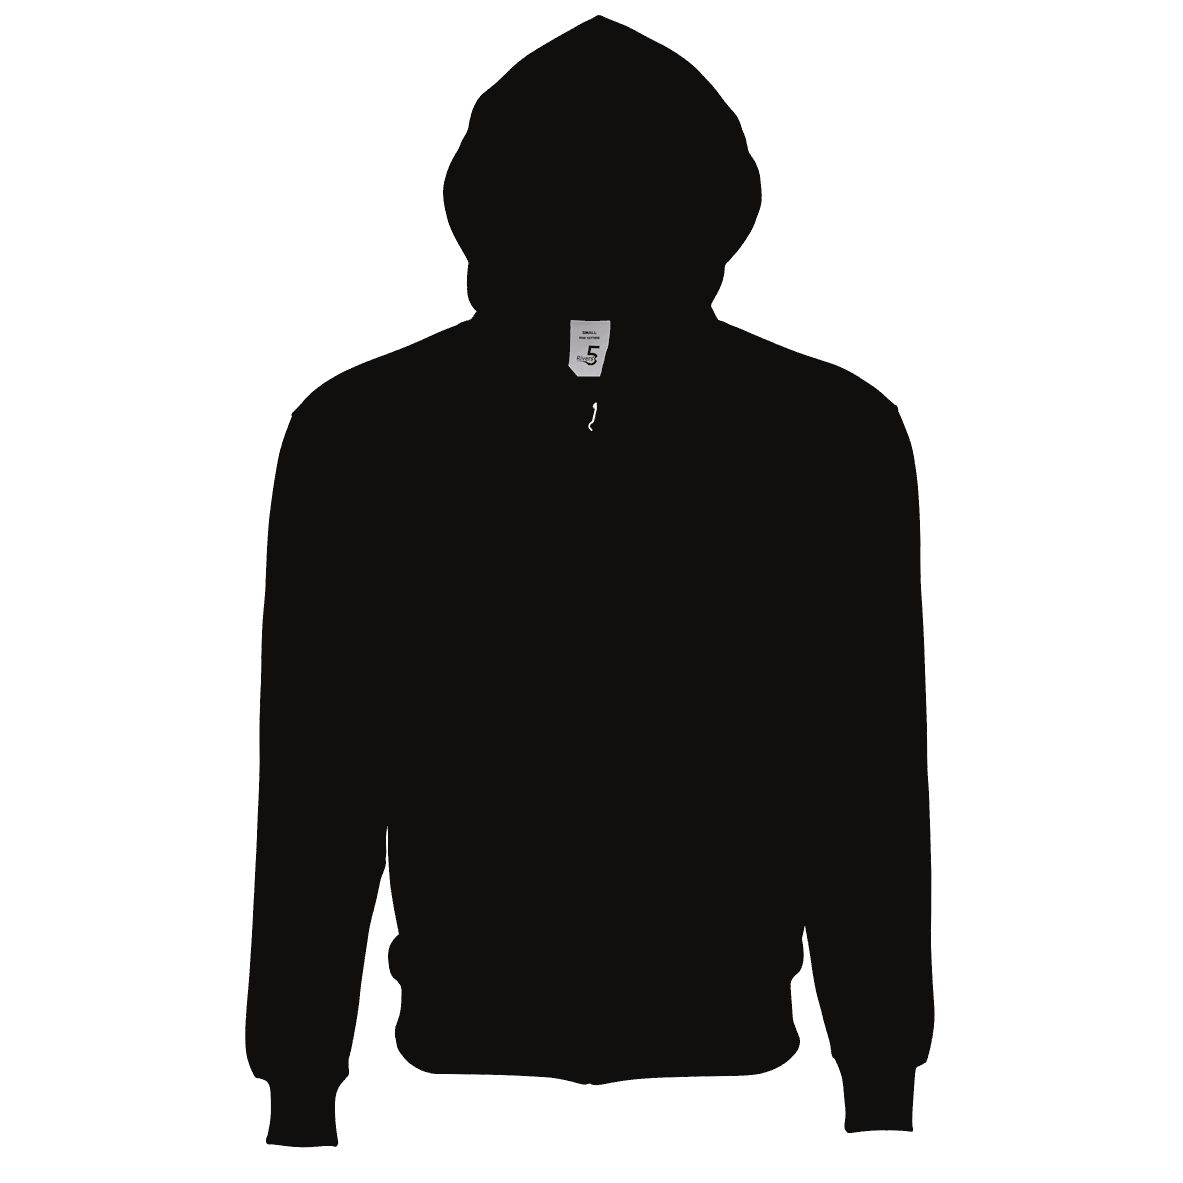 Fleece Zipper Black